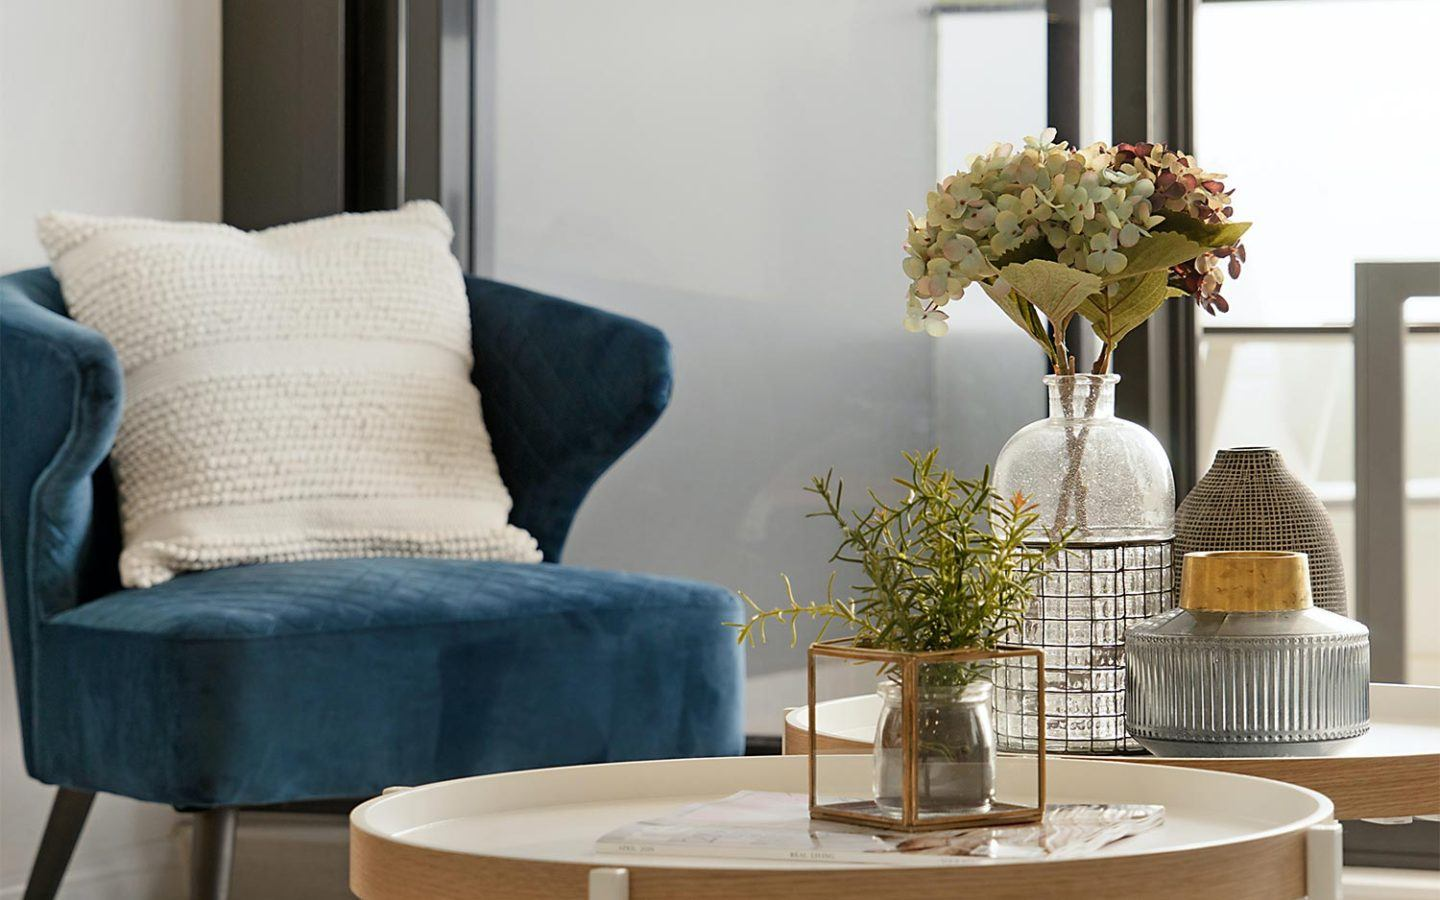 blue chair with white pillow behind circular brown tables with flower vases